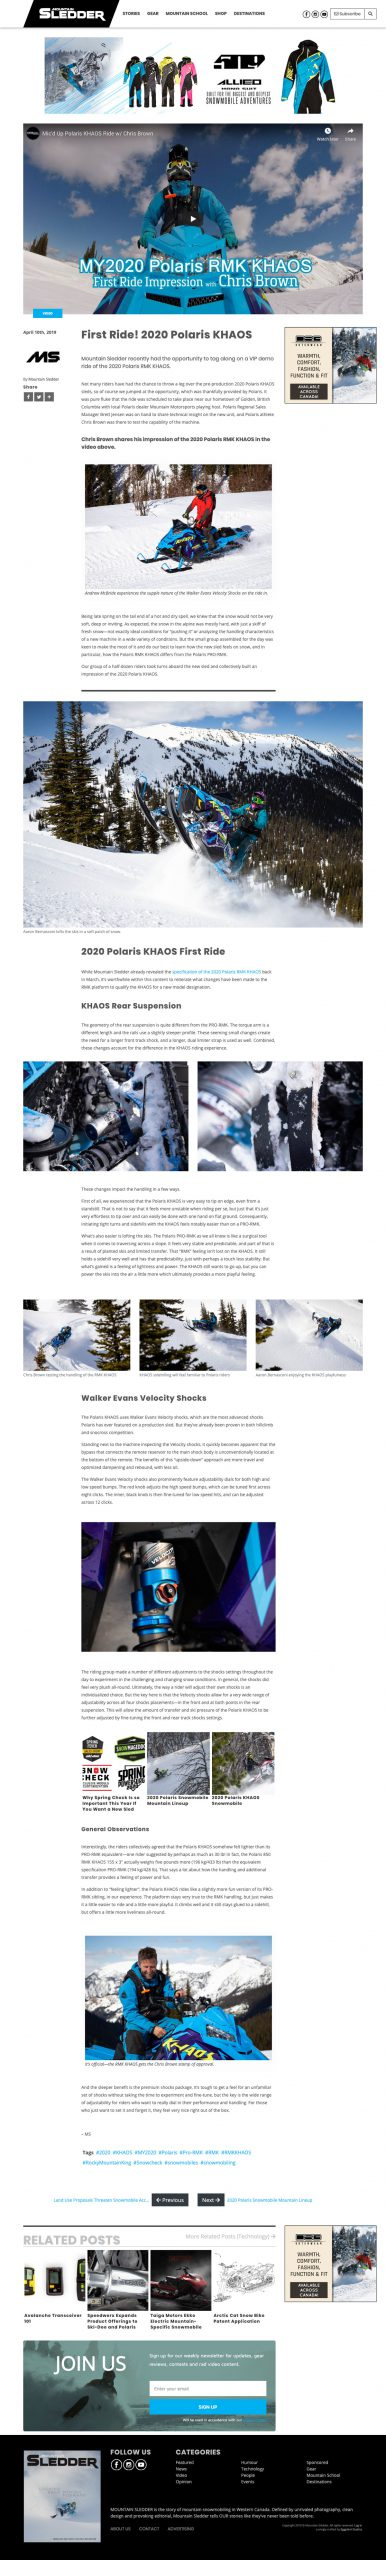 Mountain Sledder Magazine